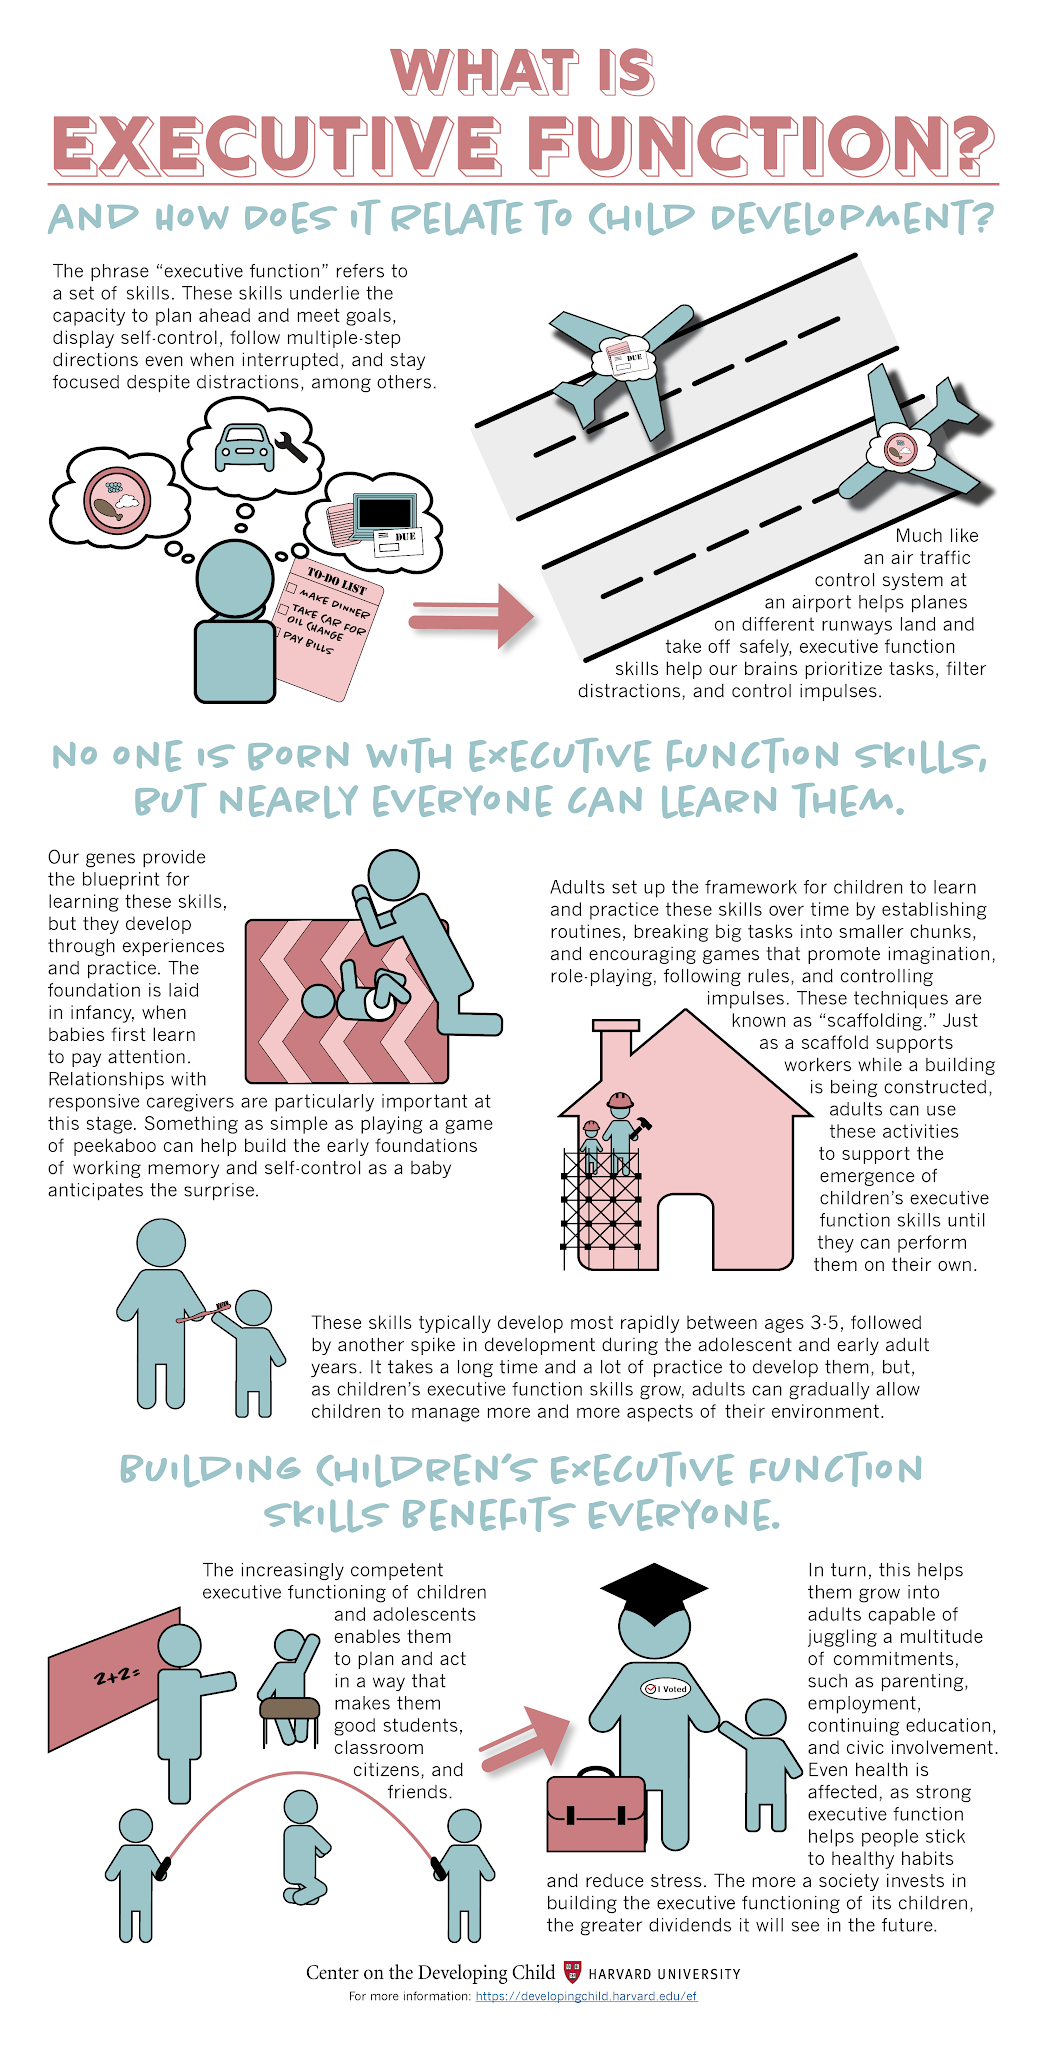 What Is Executive Function? And How Does It Relate to Child Development? #infographic  #Children #Child Development #Learning